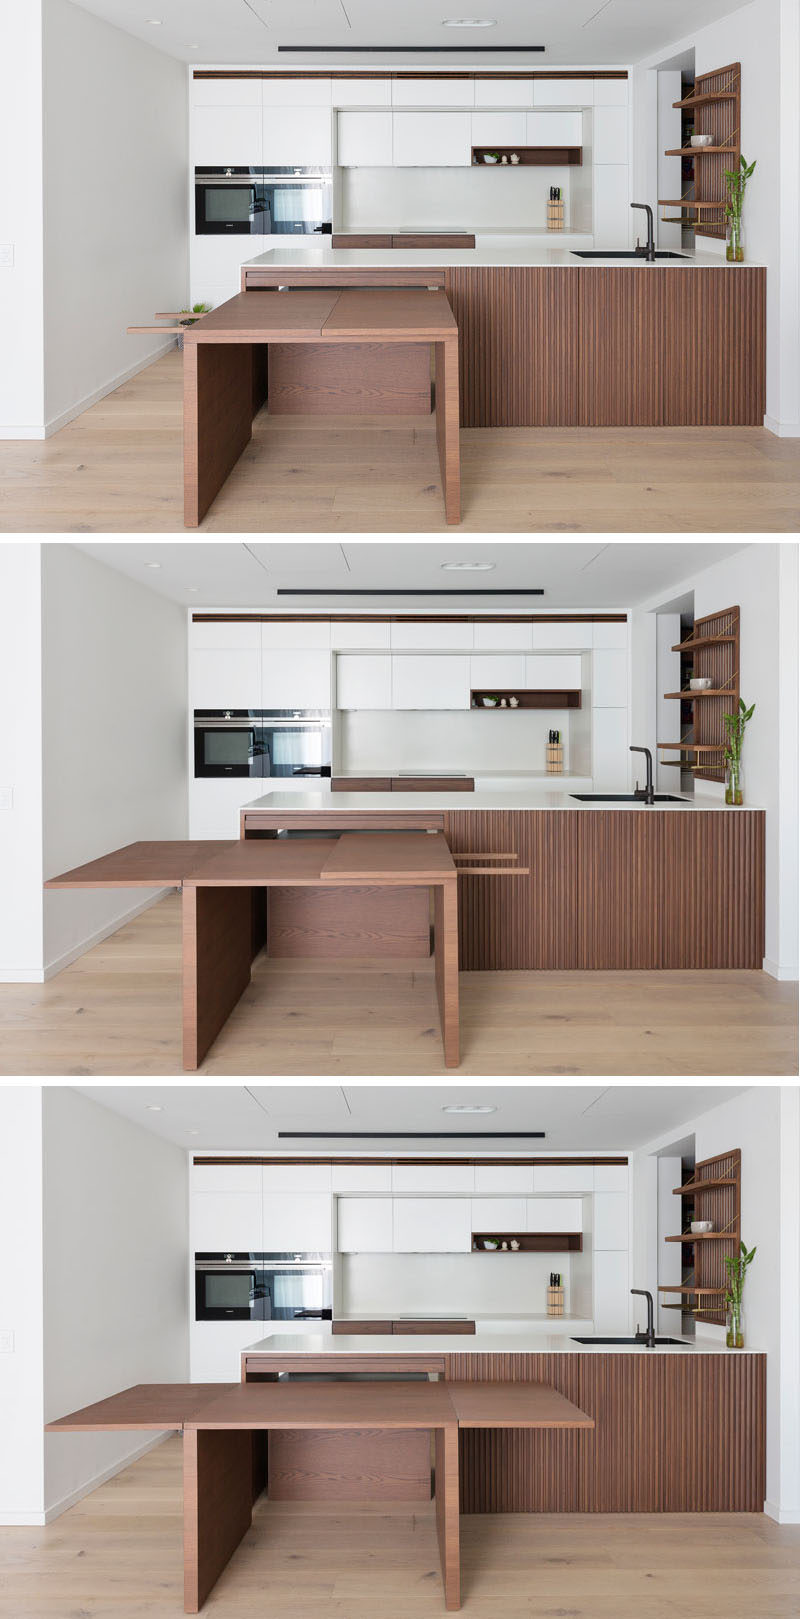 This modern kitchen features custom stained American Oak, corian countertops, and pull-out dining table, which sits flush within the kitchen bench and extends into a large dining table. #ModernKitchen #HiddenDiningTable #BuiltInDiningTable